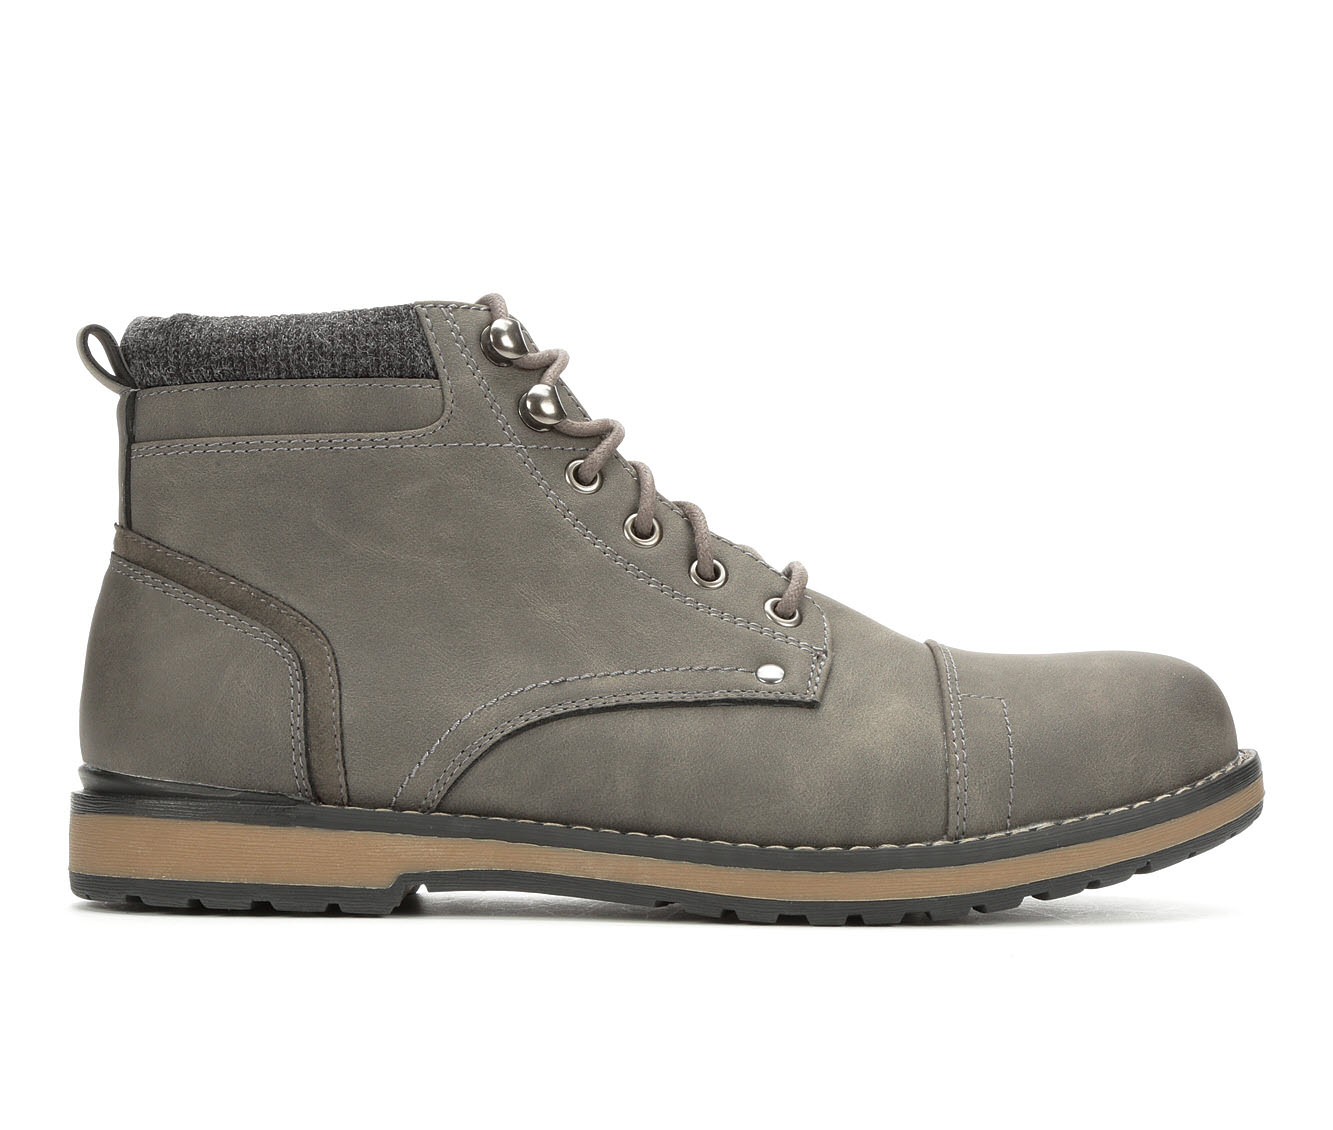 Gotcha Royston Men's Boots (Gray Faux Leather)